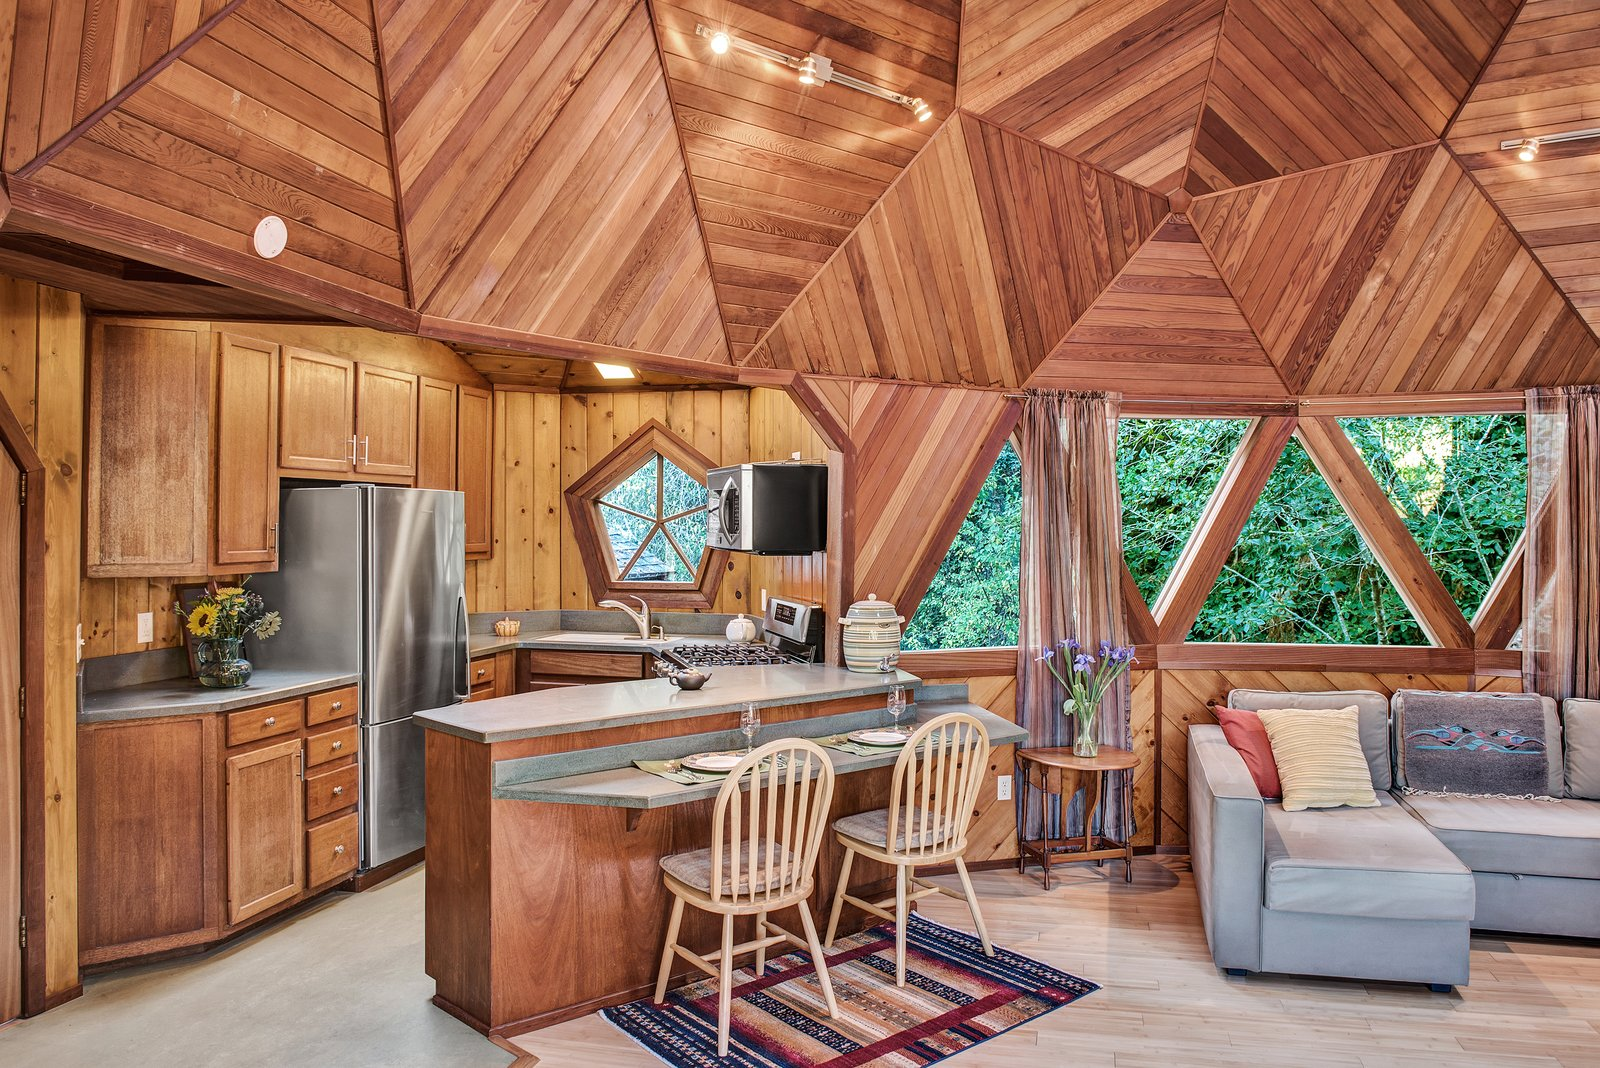 Kitchen, Laminate, Wood, Refrigerator, Light Hardwood, Microwave, Wood, Concrete, Ceiling, Range, Track, and Drop In Triangular windows let plenty of light in.  Best Kitchen Concrete Refrigerator Microwave Light Hardwood Photos from A Geodesic Getaway in Northern California Asks $475K